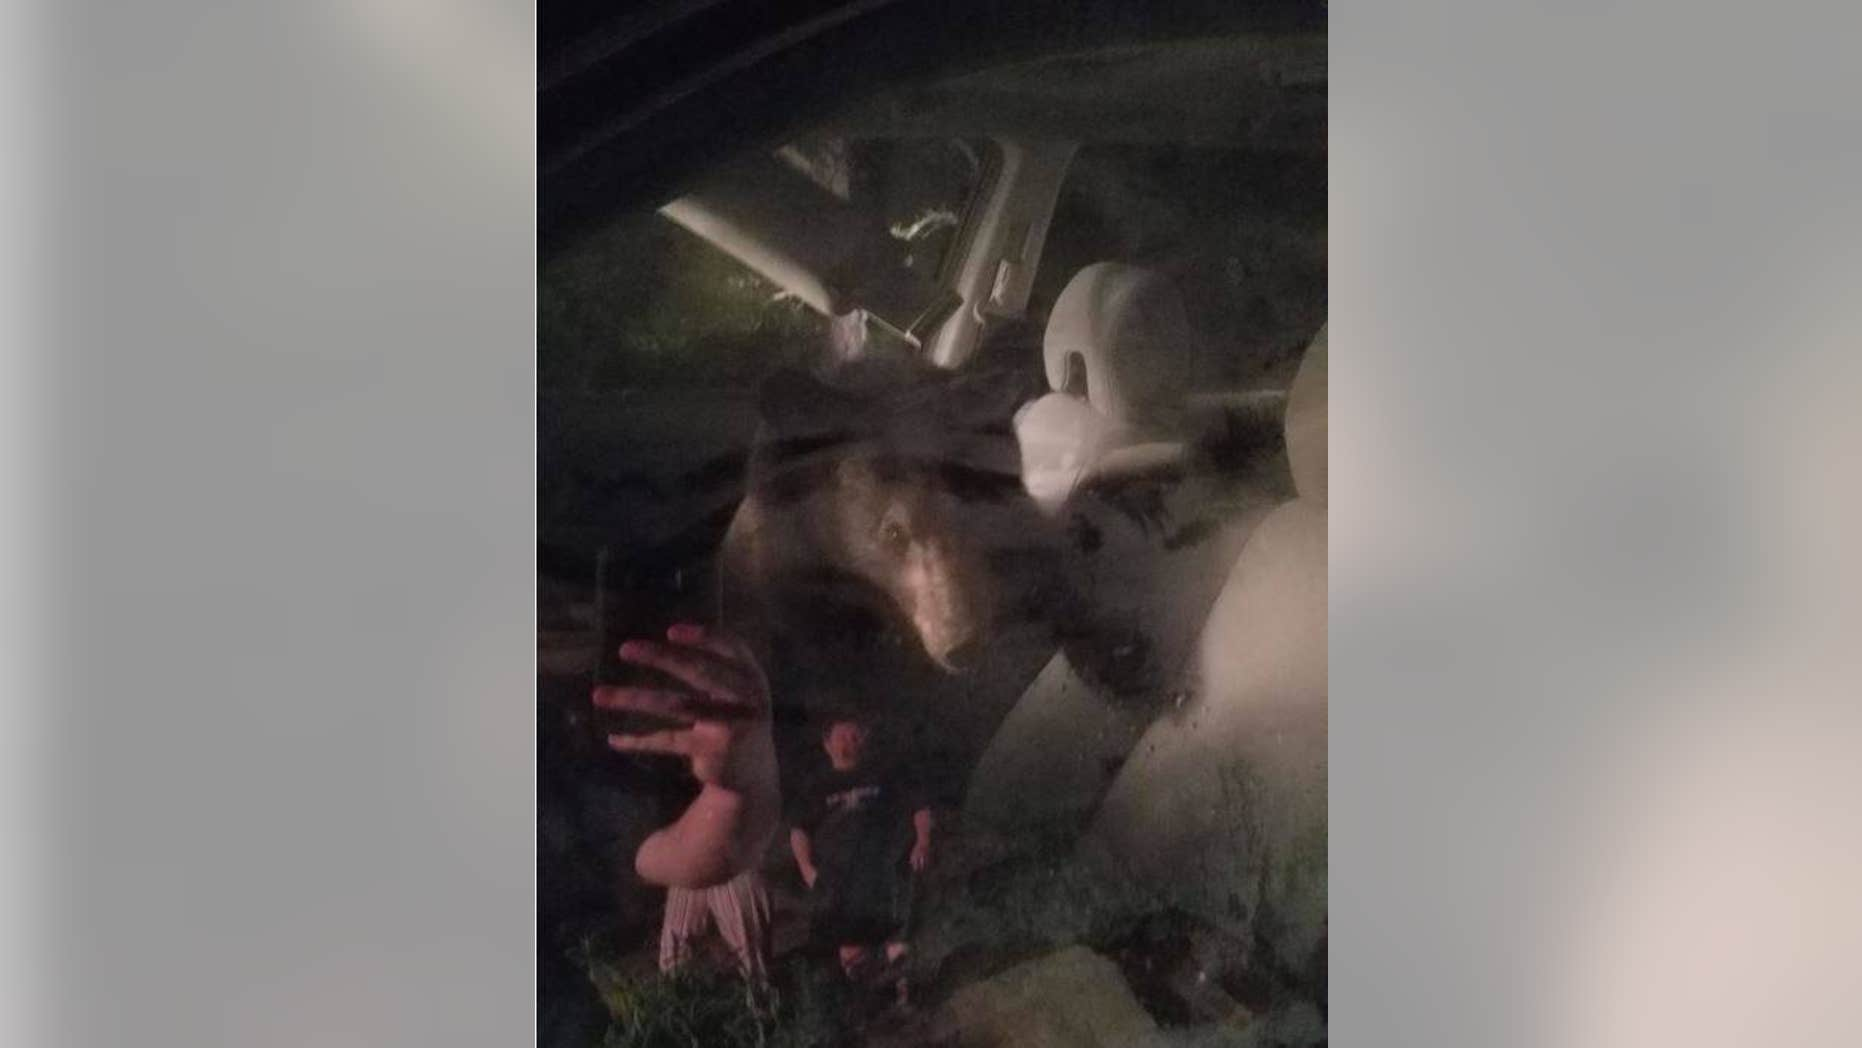 Roanoke County Police Department found the bear inside the vehicle about 5 a.m. last Thursday. (Roanoke County Police Department)